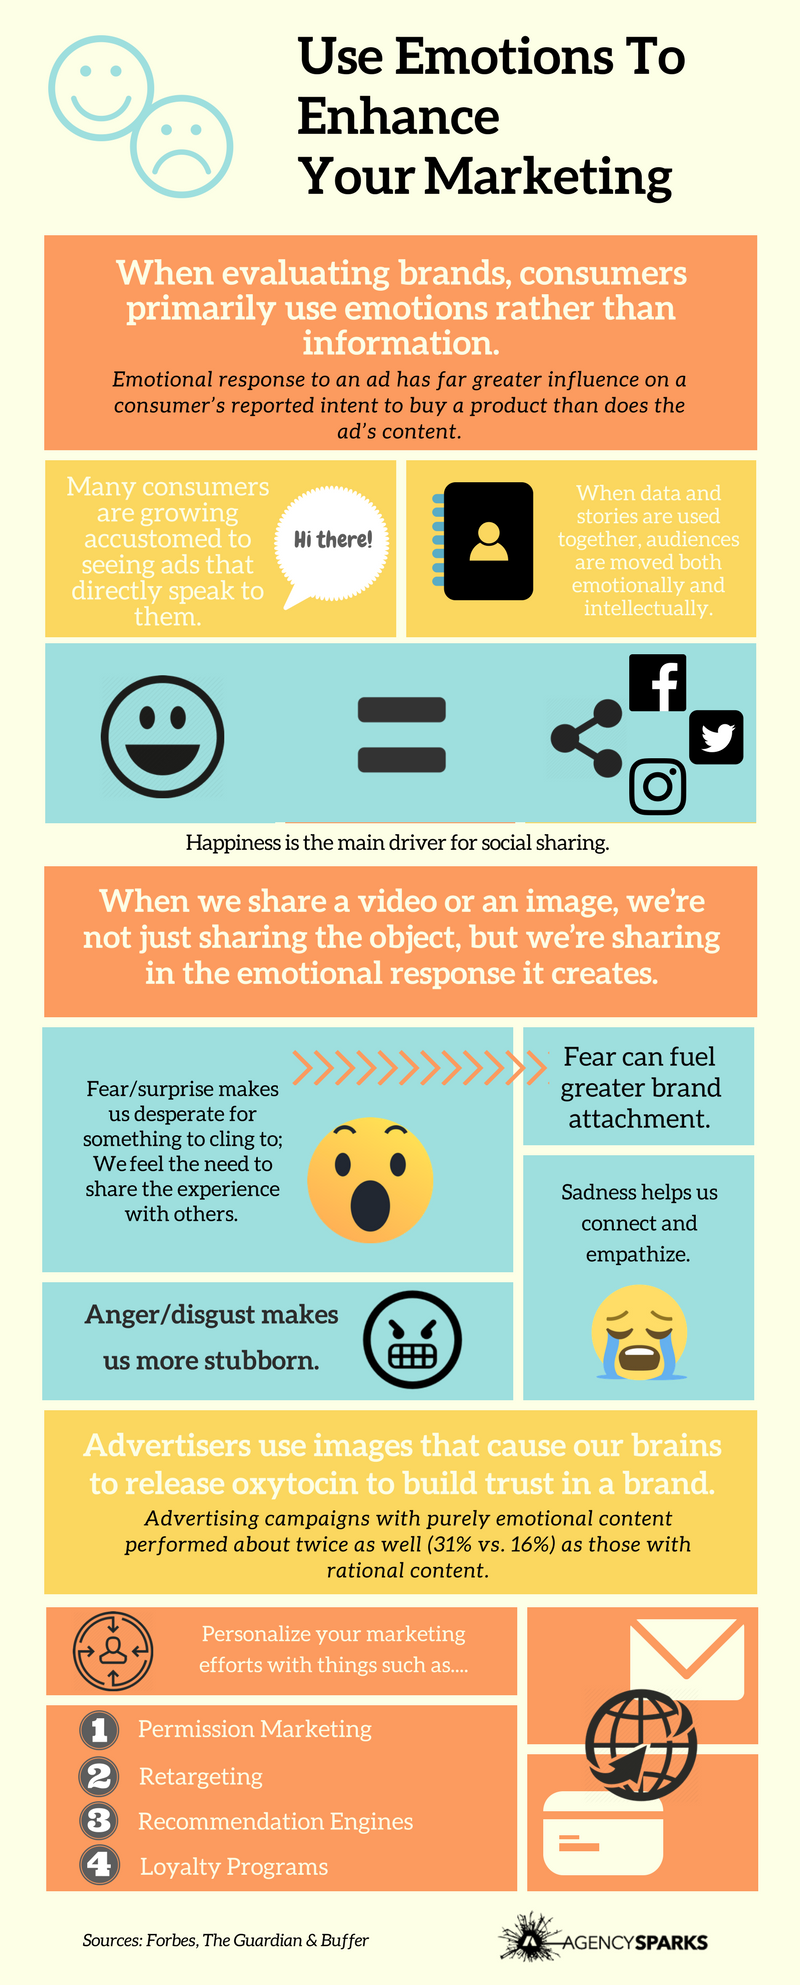 Emotions play a crucial role in the way marketer's frame their content. It allows marketers to discover what consumers actually want. When evaluating brands, consumers primarily use emotions (personal feelings and experiences) rather than information (brand attributes, features, and facts). Emotional response to an ad has far greater influence on a consumer's reported intent to buy a product than does the ad's content by a factor of 3-to-1 for television commercials and 2-to-1 for print ads. When data and stories are used together, audiences are moved both emotionally and intellectually.